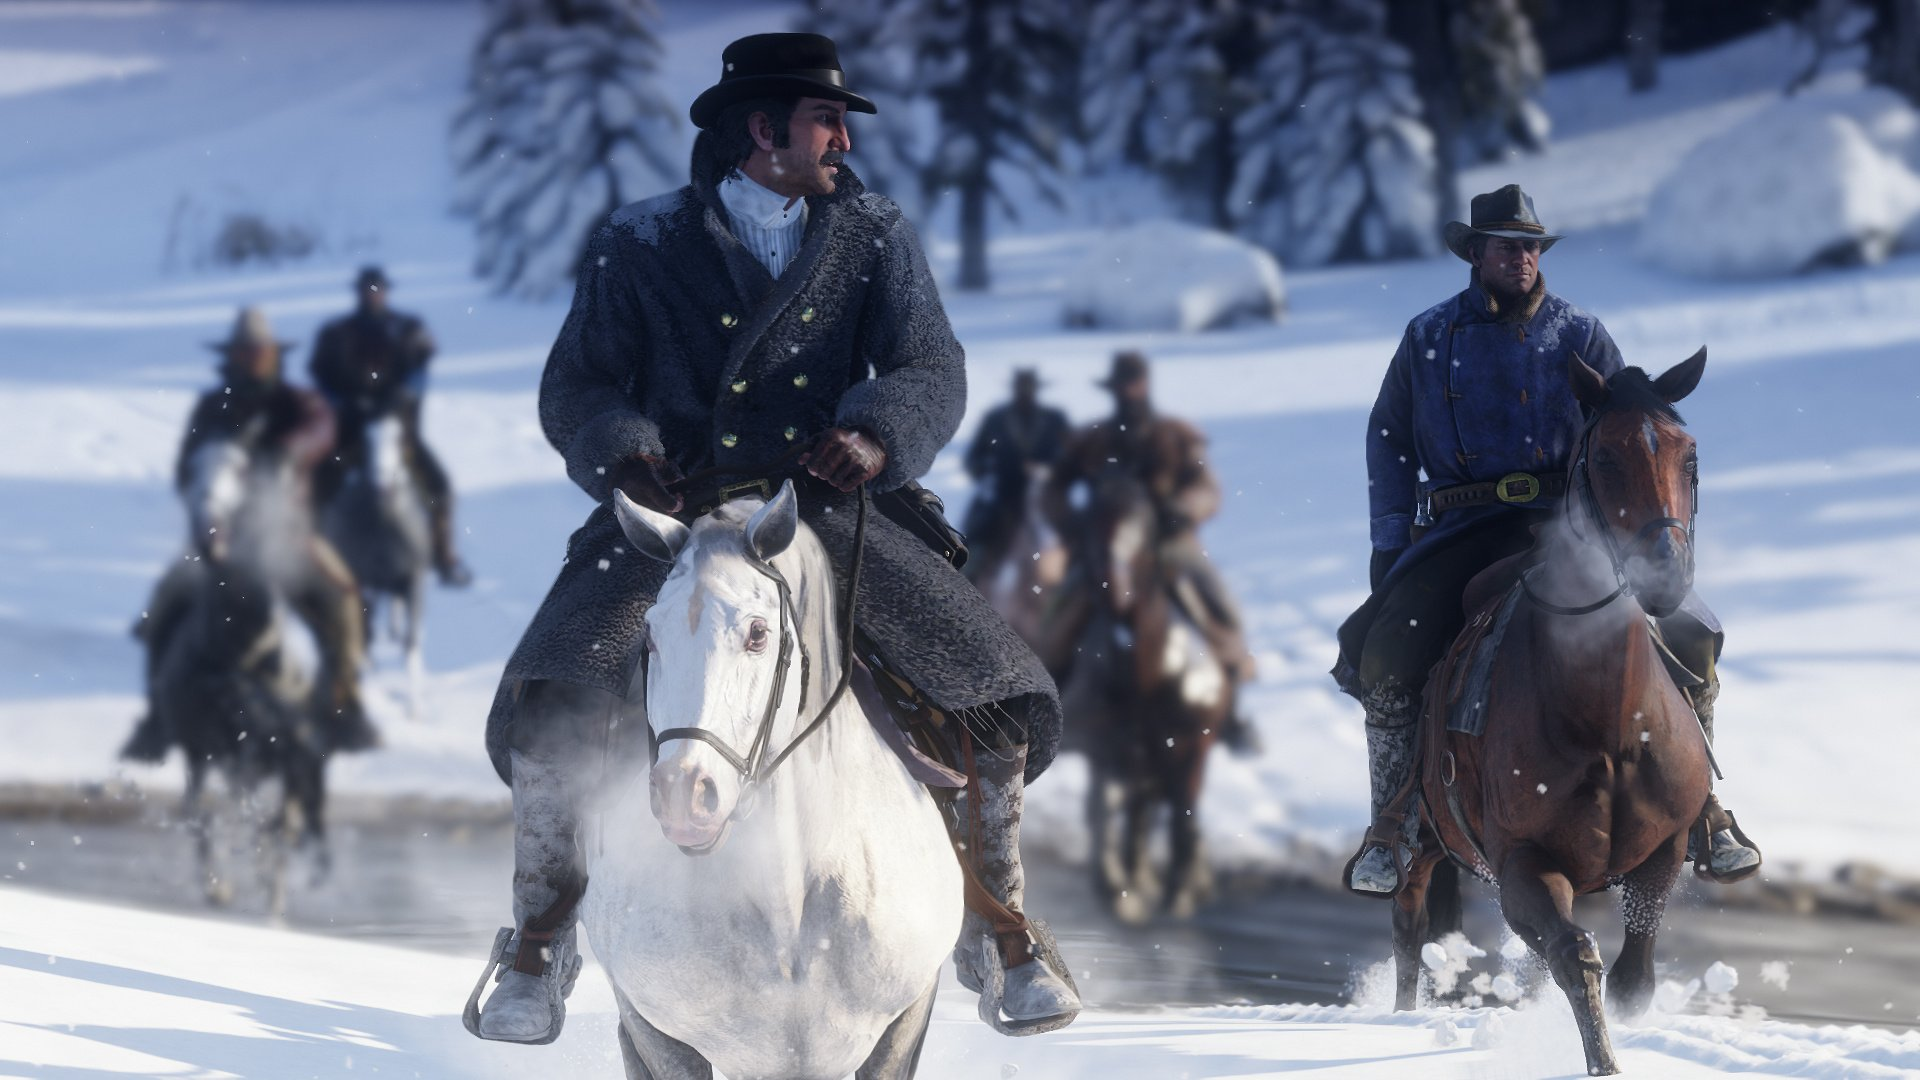 First look at 'Red Dead Redemption 2' gameplay